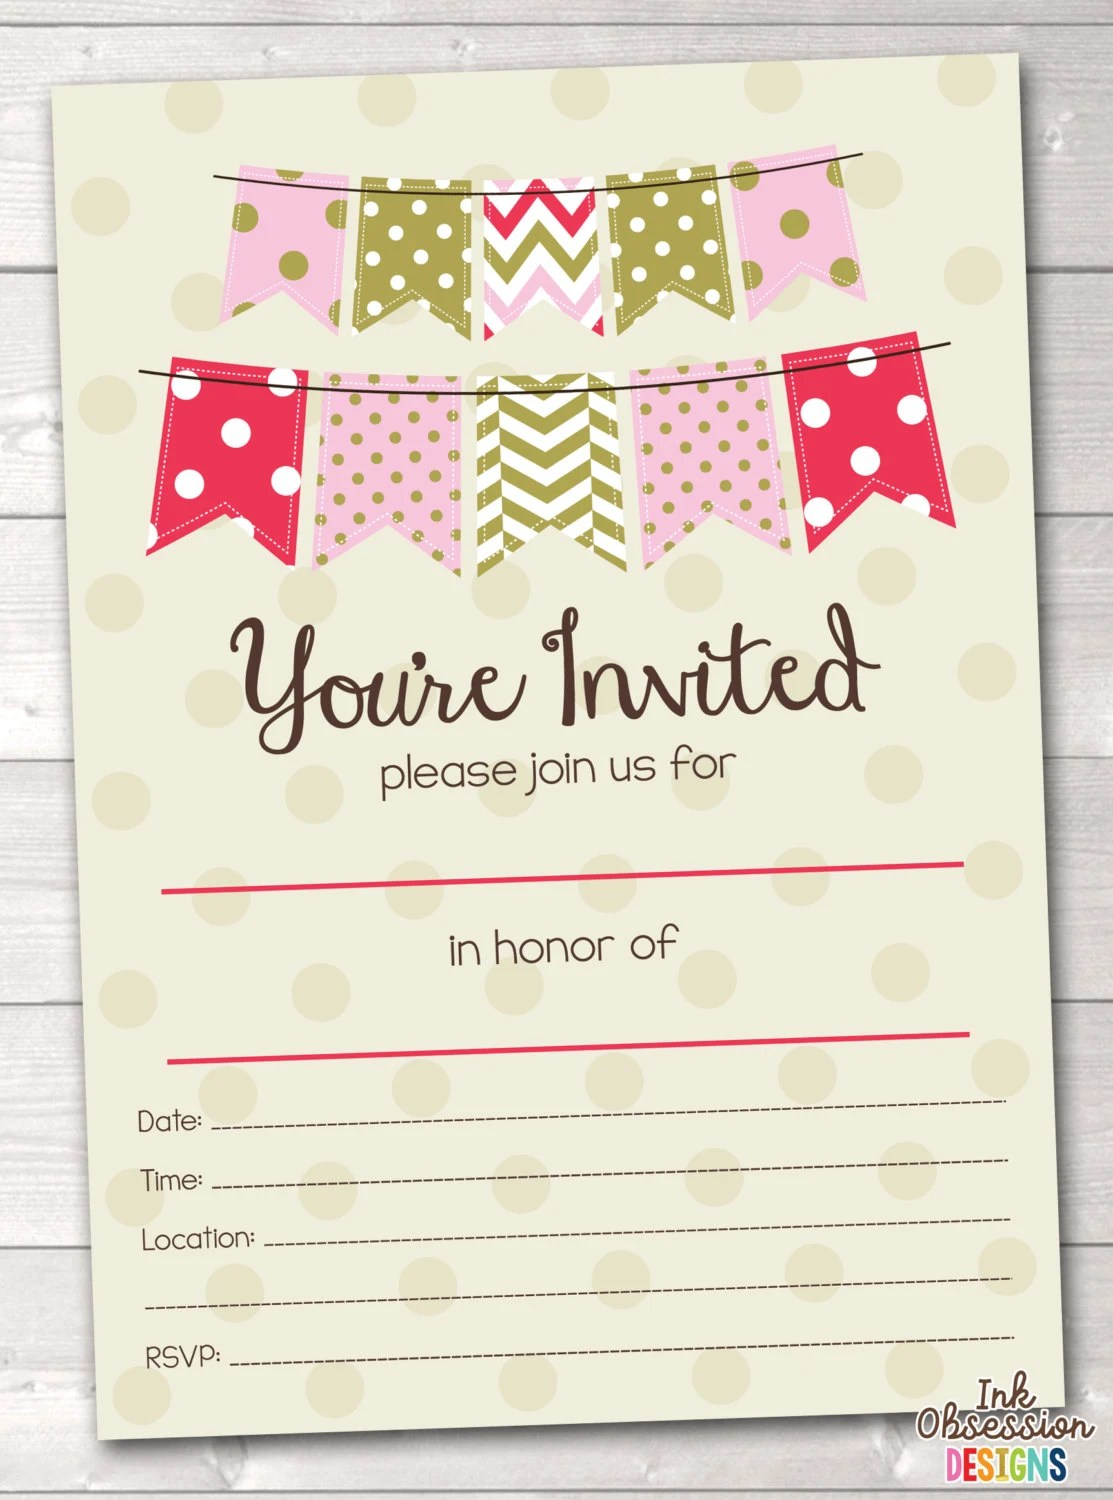 Plain Bridal Shower Invitations